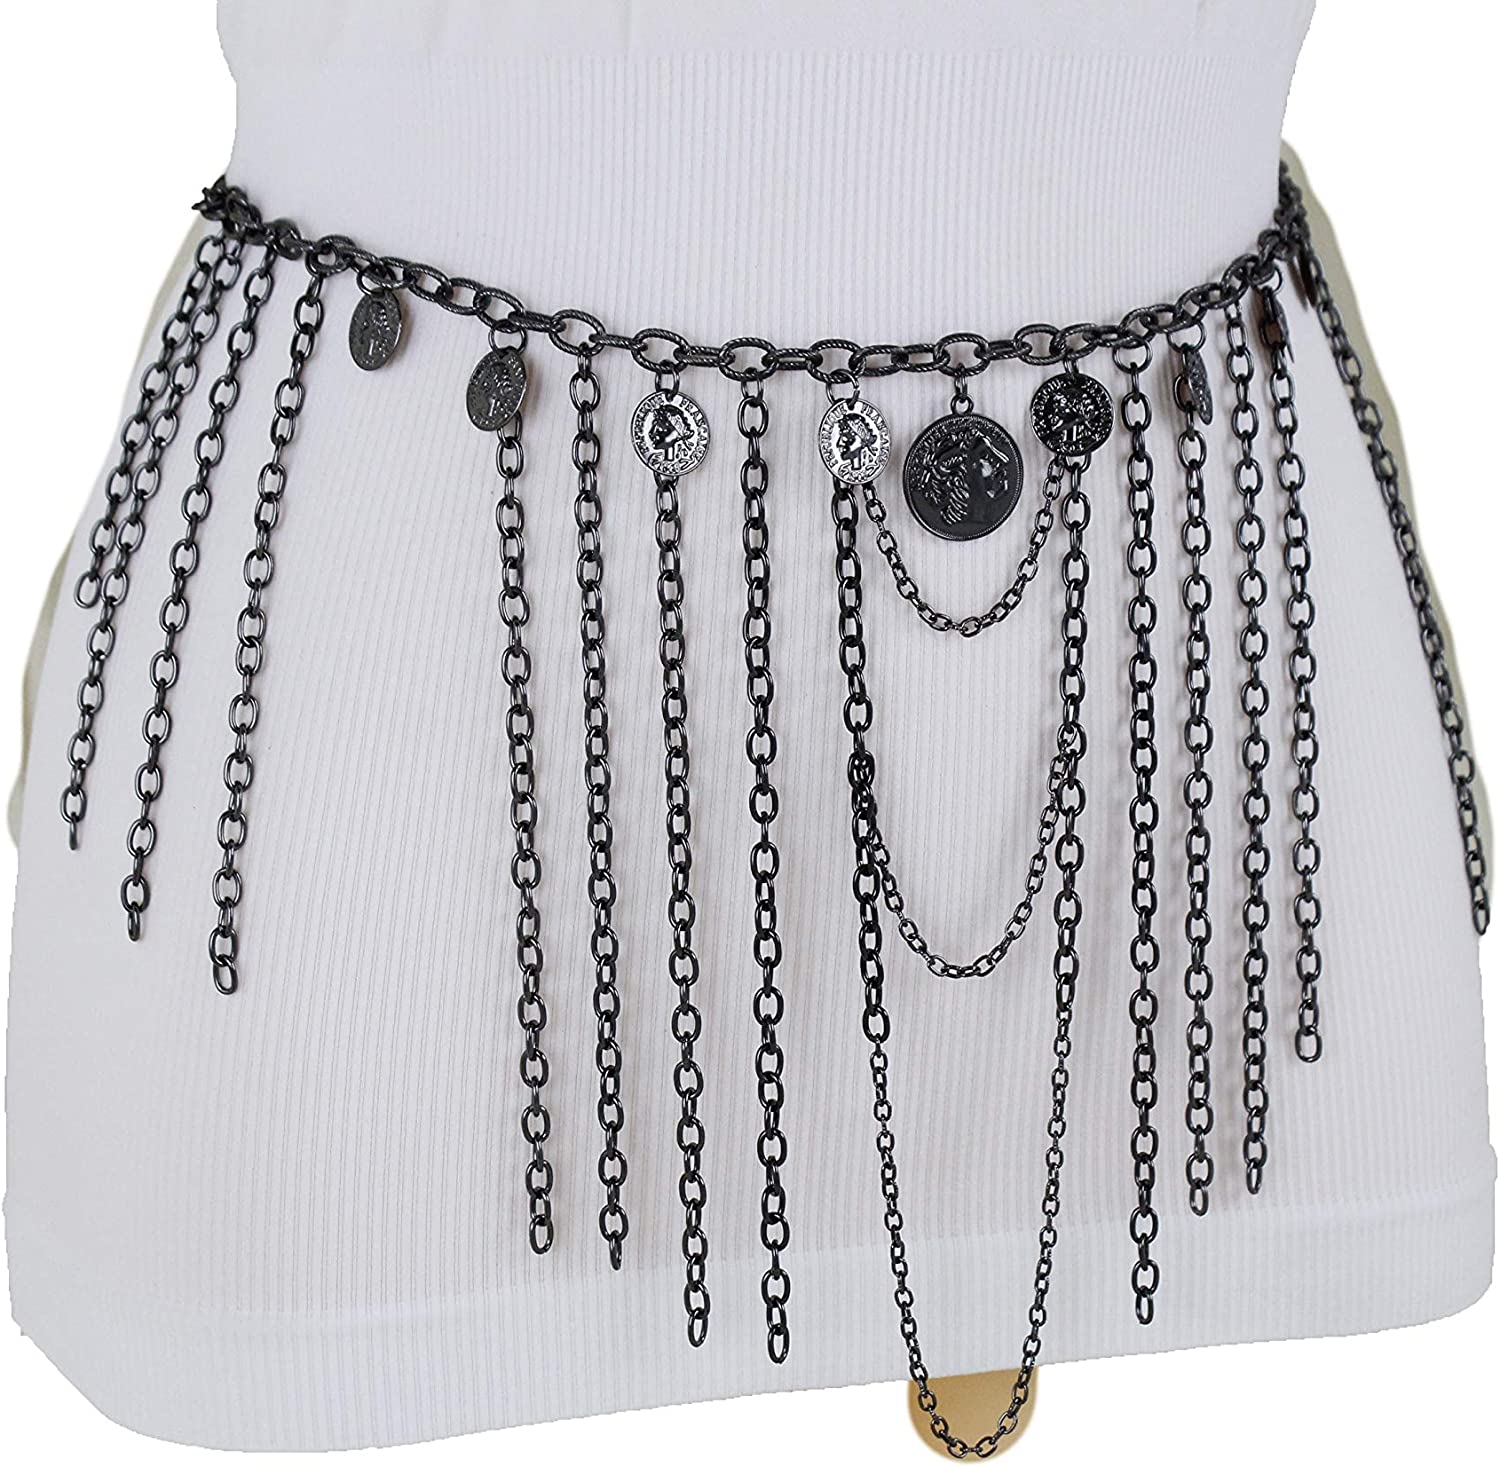 Women Pewter Black Metal Ethnic Fashion Belt Hip High Waist Coin Charms XS S M